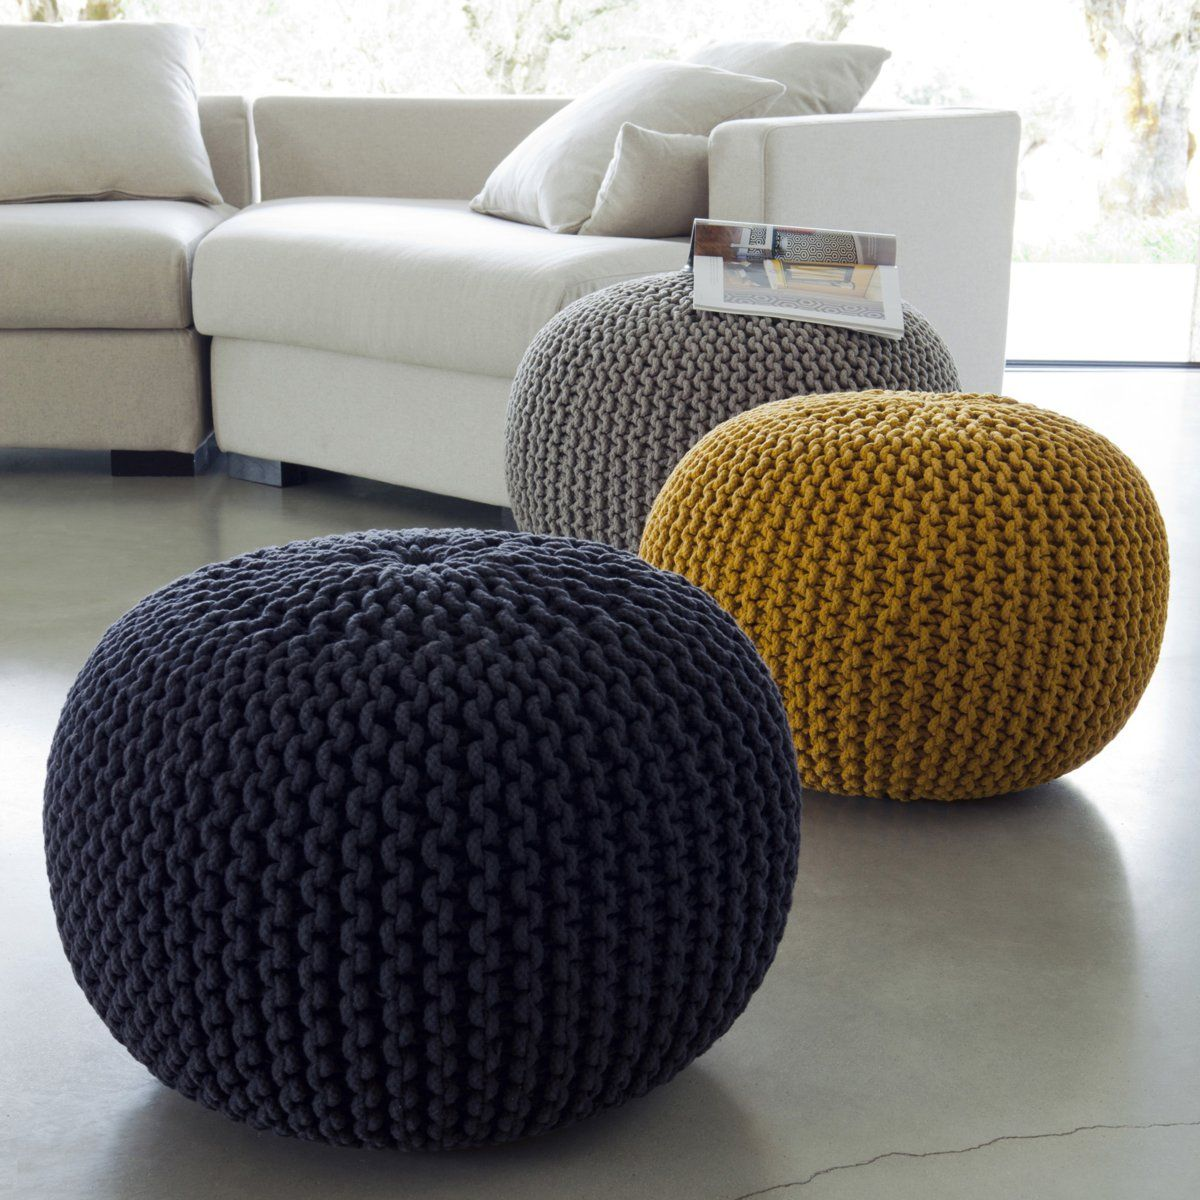 pouf maille tricot e jakob am pm la redoute 995. Black Bedroom Furniture Sets. Home Design Ideas